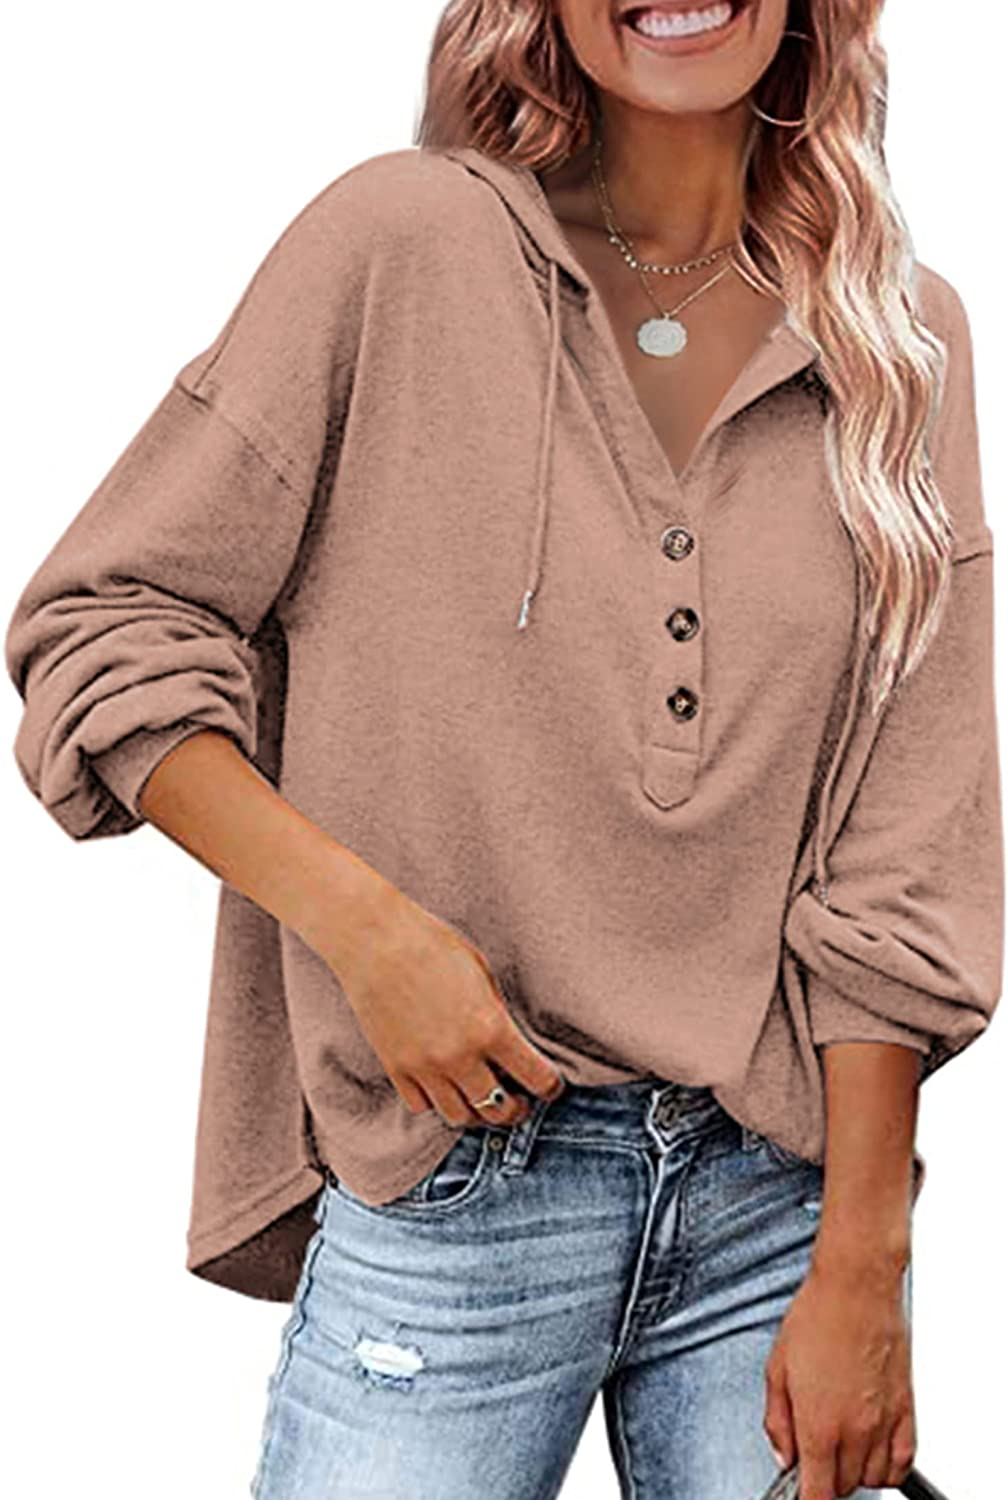 Theenkoln Women's Pullover Hoodies Casual Henley Shirt Sexy V Neck Long Sleeve Button Up Sweatshirts Tops with Drawstring